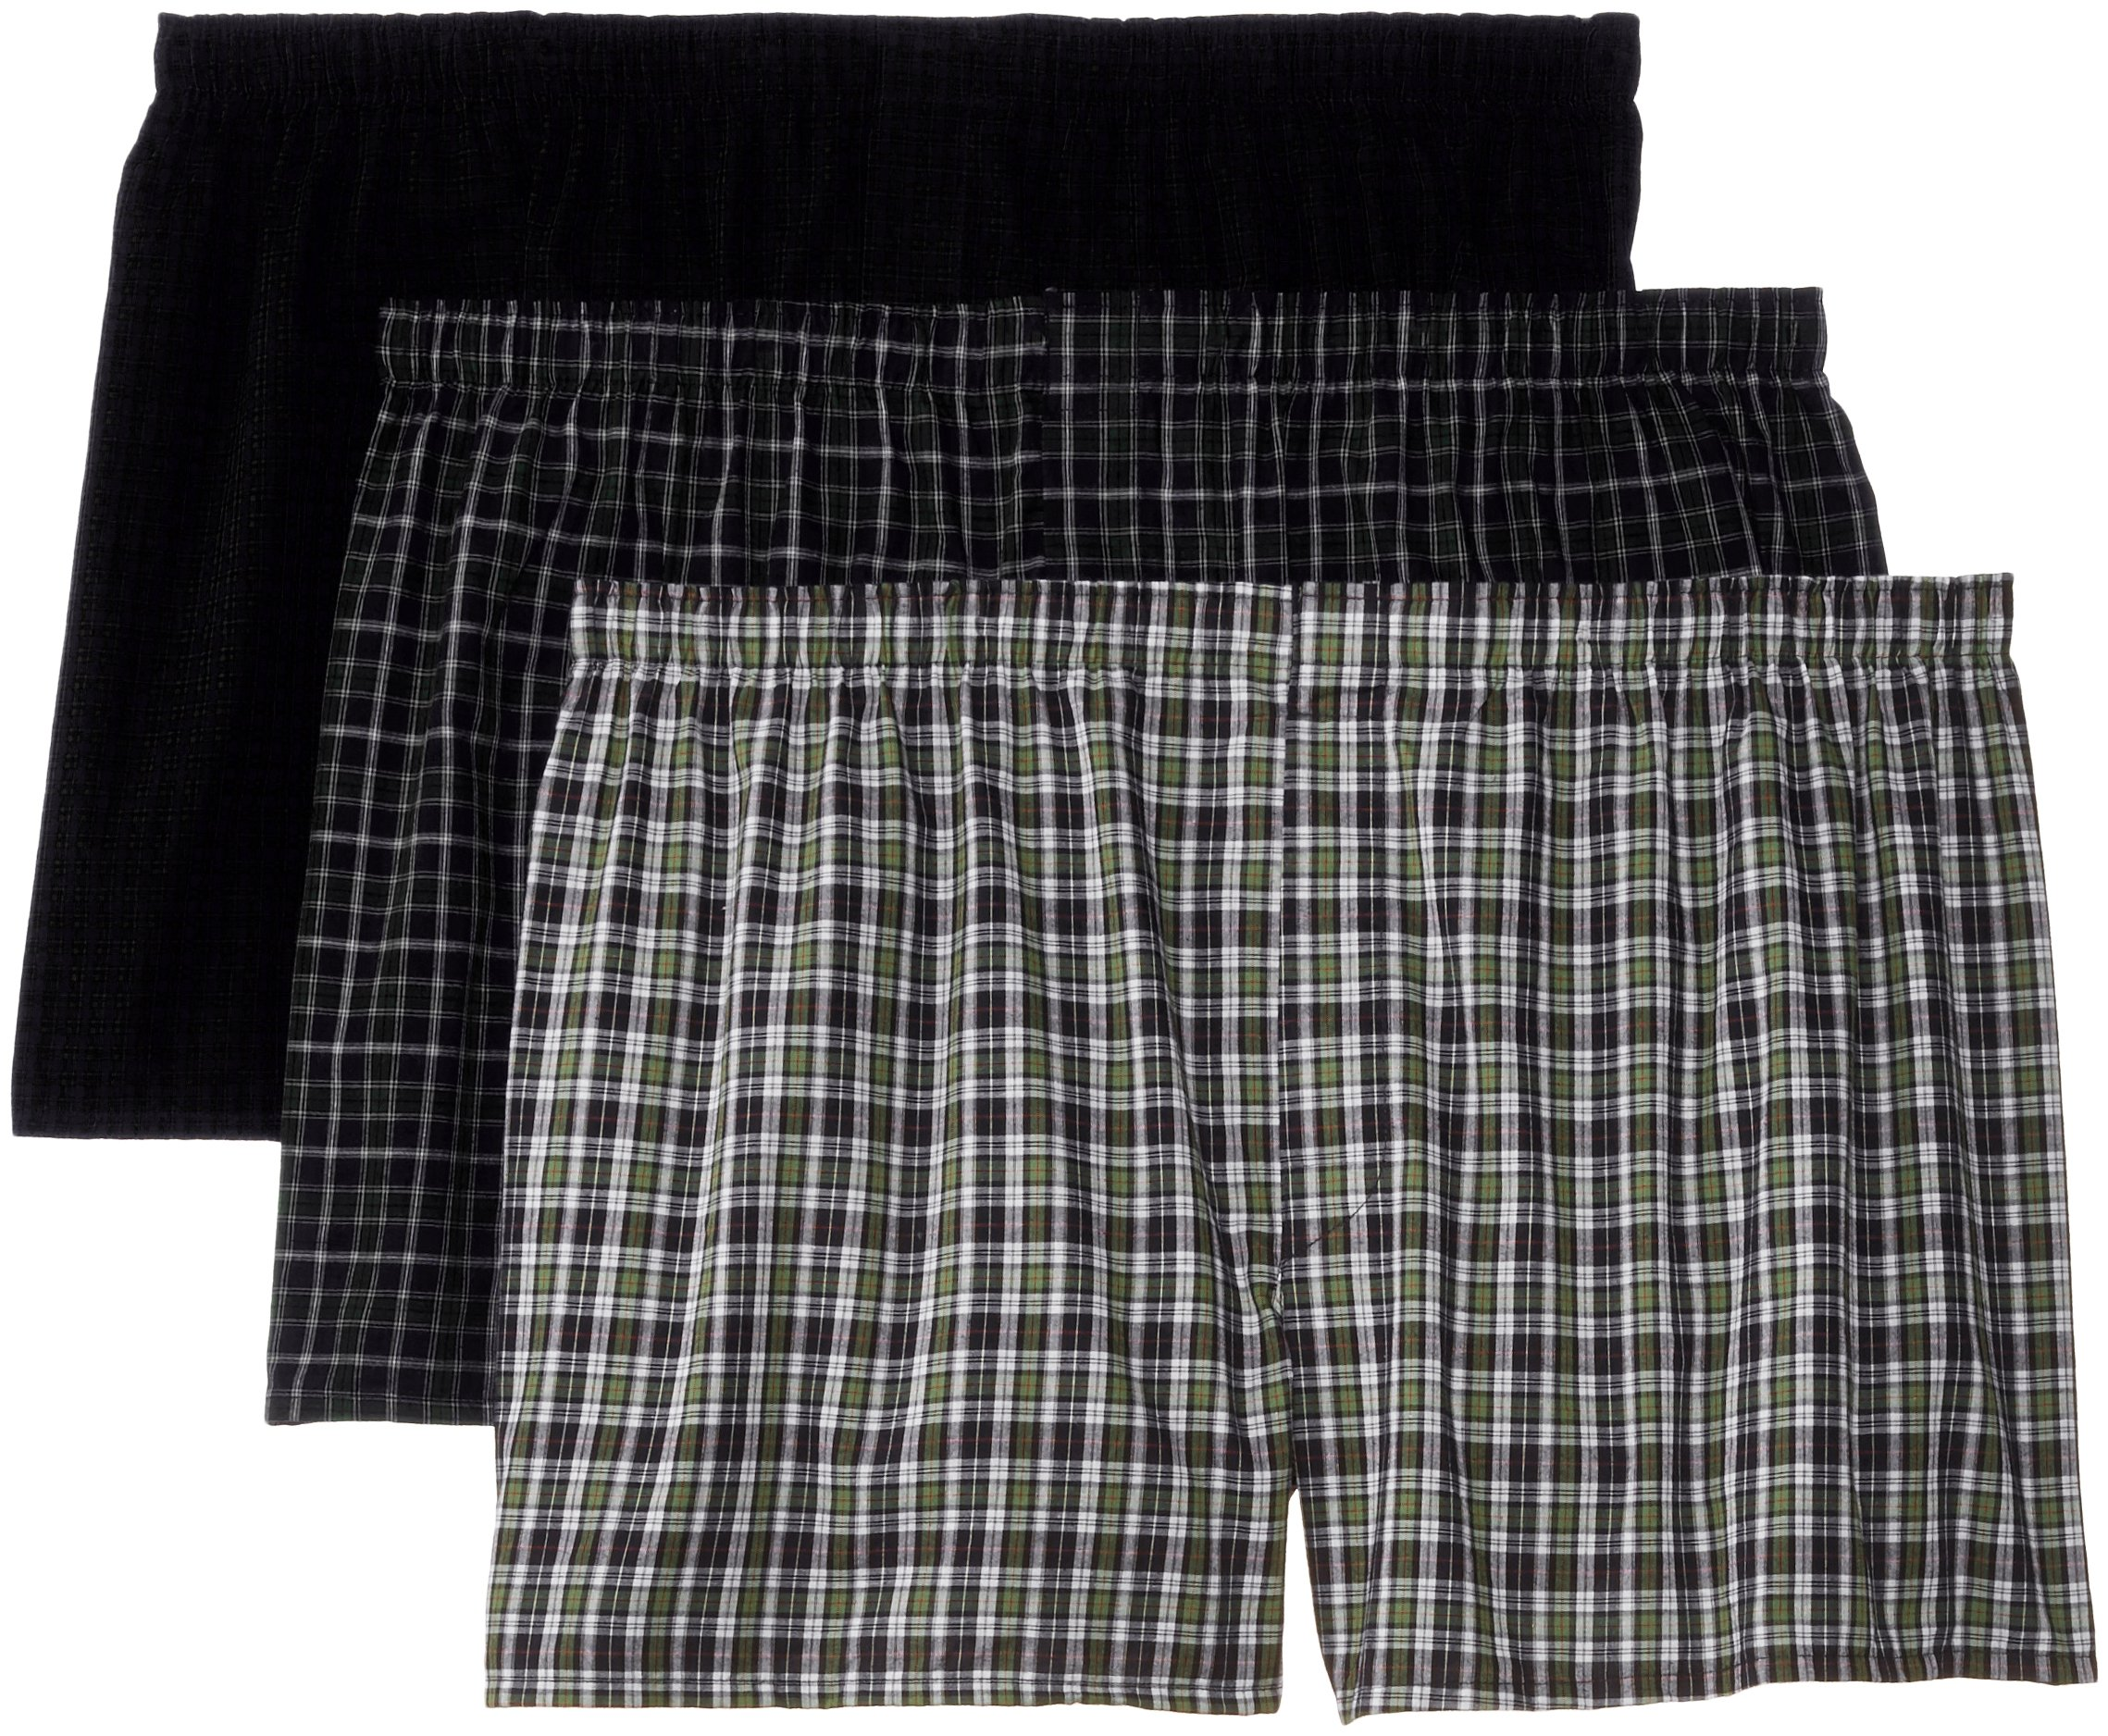 Hanes Men's Big 3-Pack Woven Boxers - Sizes, Assorted, 4X-Large